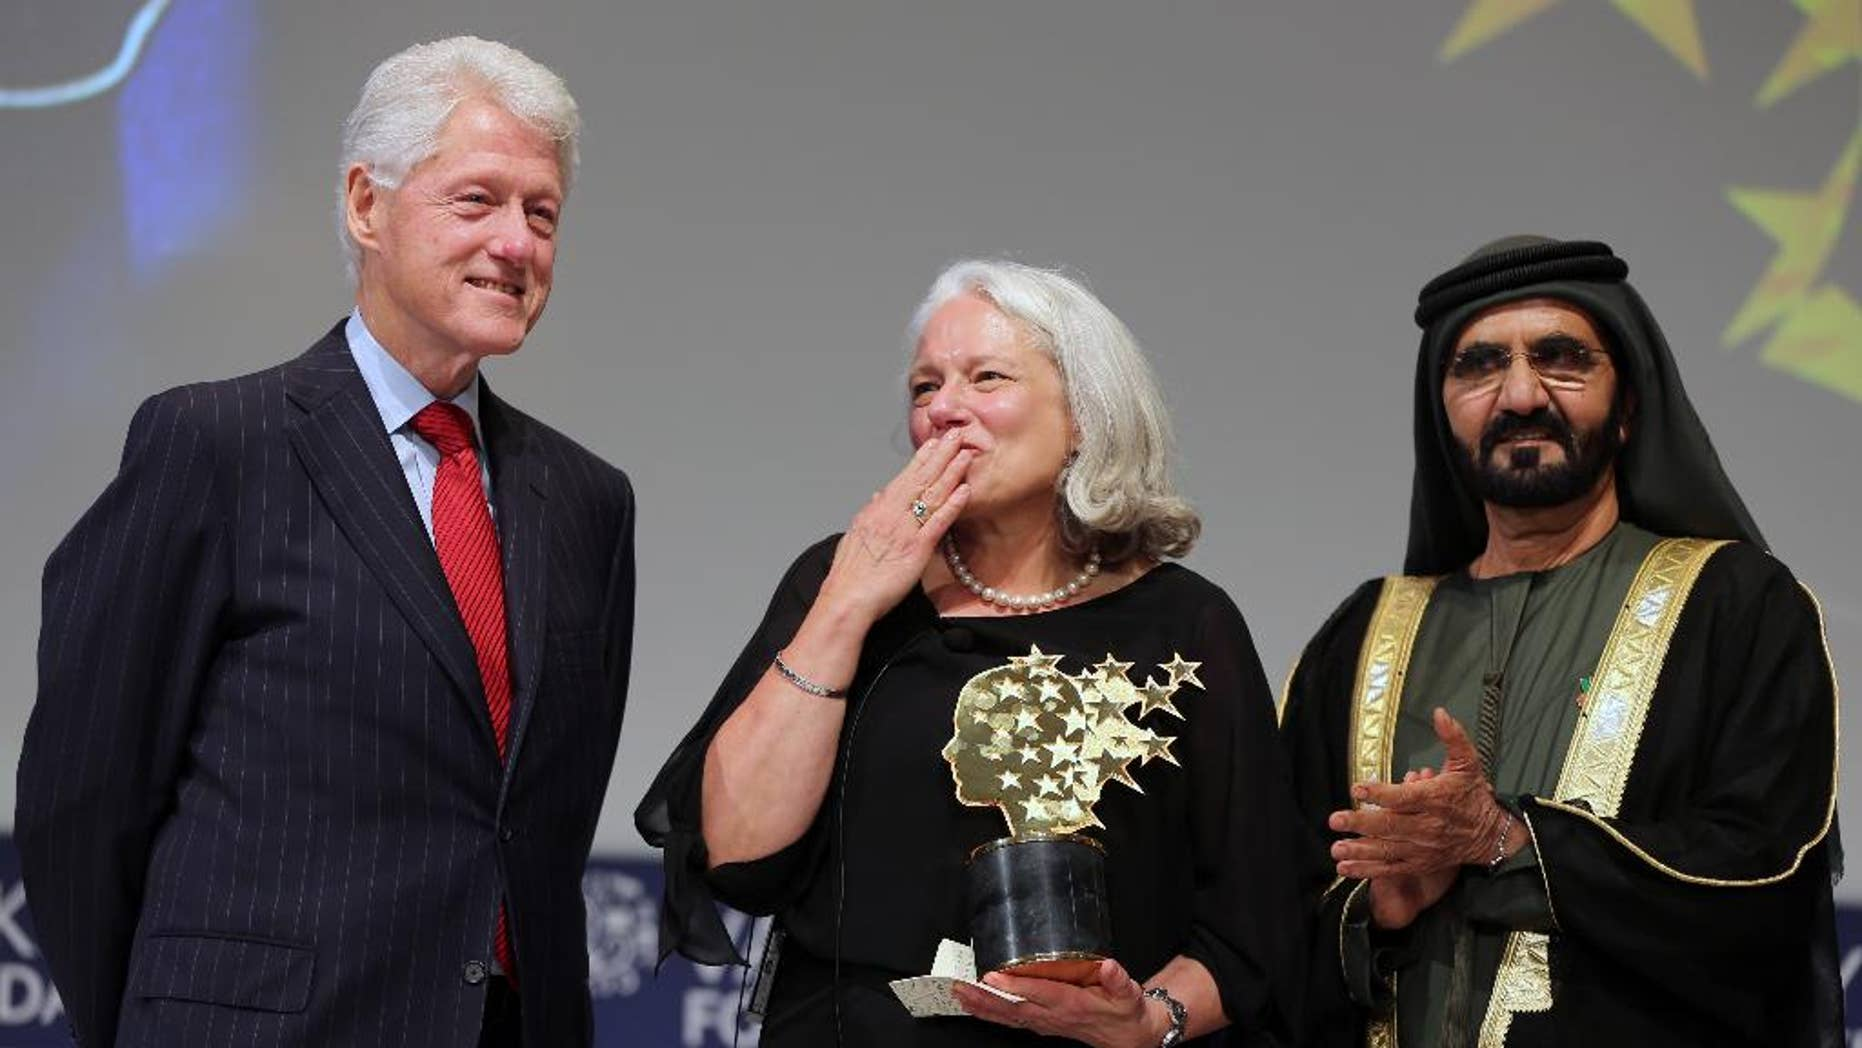 Nancie Atwell, a teacher from Southport, Maine, U.S., center, throws a kiss as she poses with former President of the United States Bill Clinton, left, and Sheikh Mohammed bin Rashid Al Maktoum, prime minister of the U.A.E. and Ruler of Dubai, after she won the $1 million Global Teacher Prize in Dubai, United Arab Emirates, Sunday, March 15, 2015. Atwell has been teaching since 1973 and founded the Center for Teaching and Learning in Southport. (AP Photo/Kamran Jebreili)